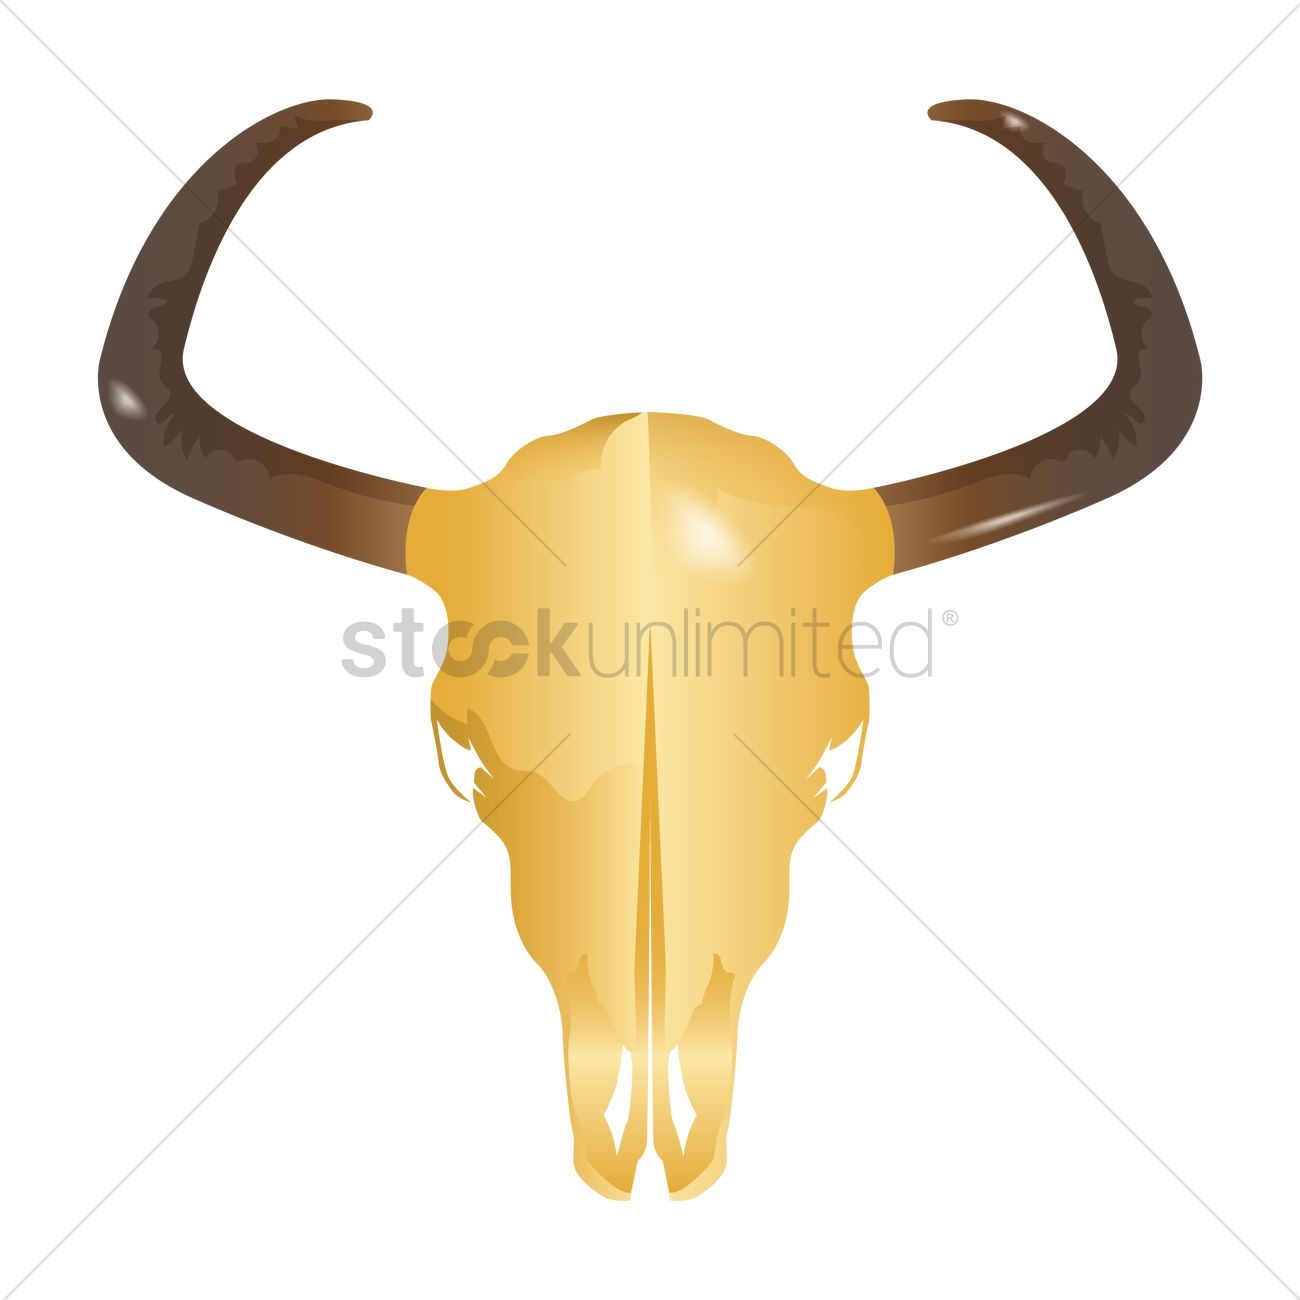 Mexican bull head decoration Vector Image - 2014589 | StockUnlimited